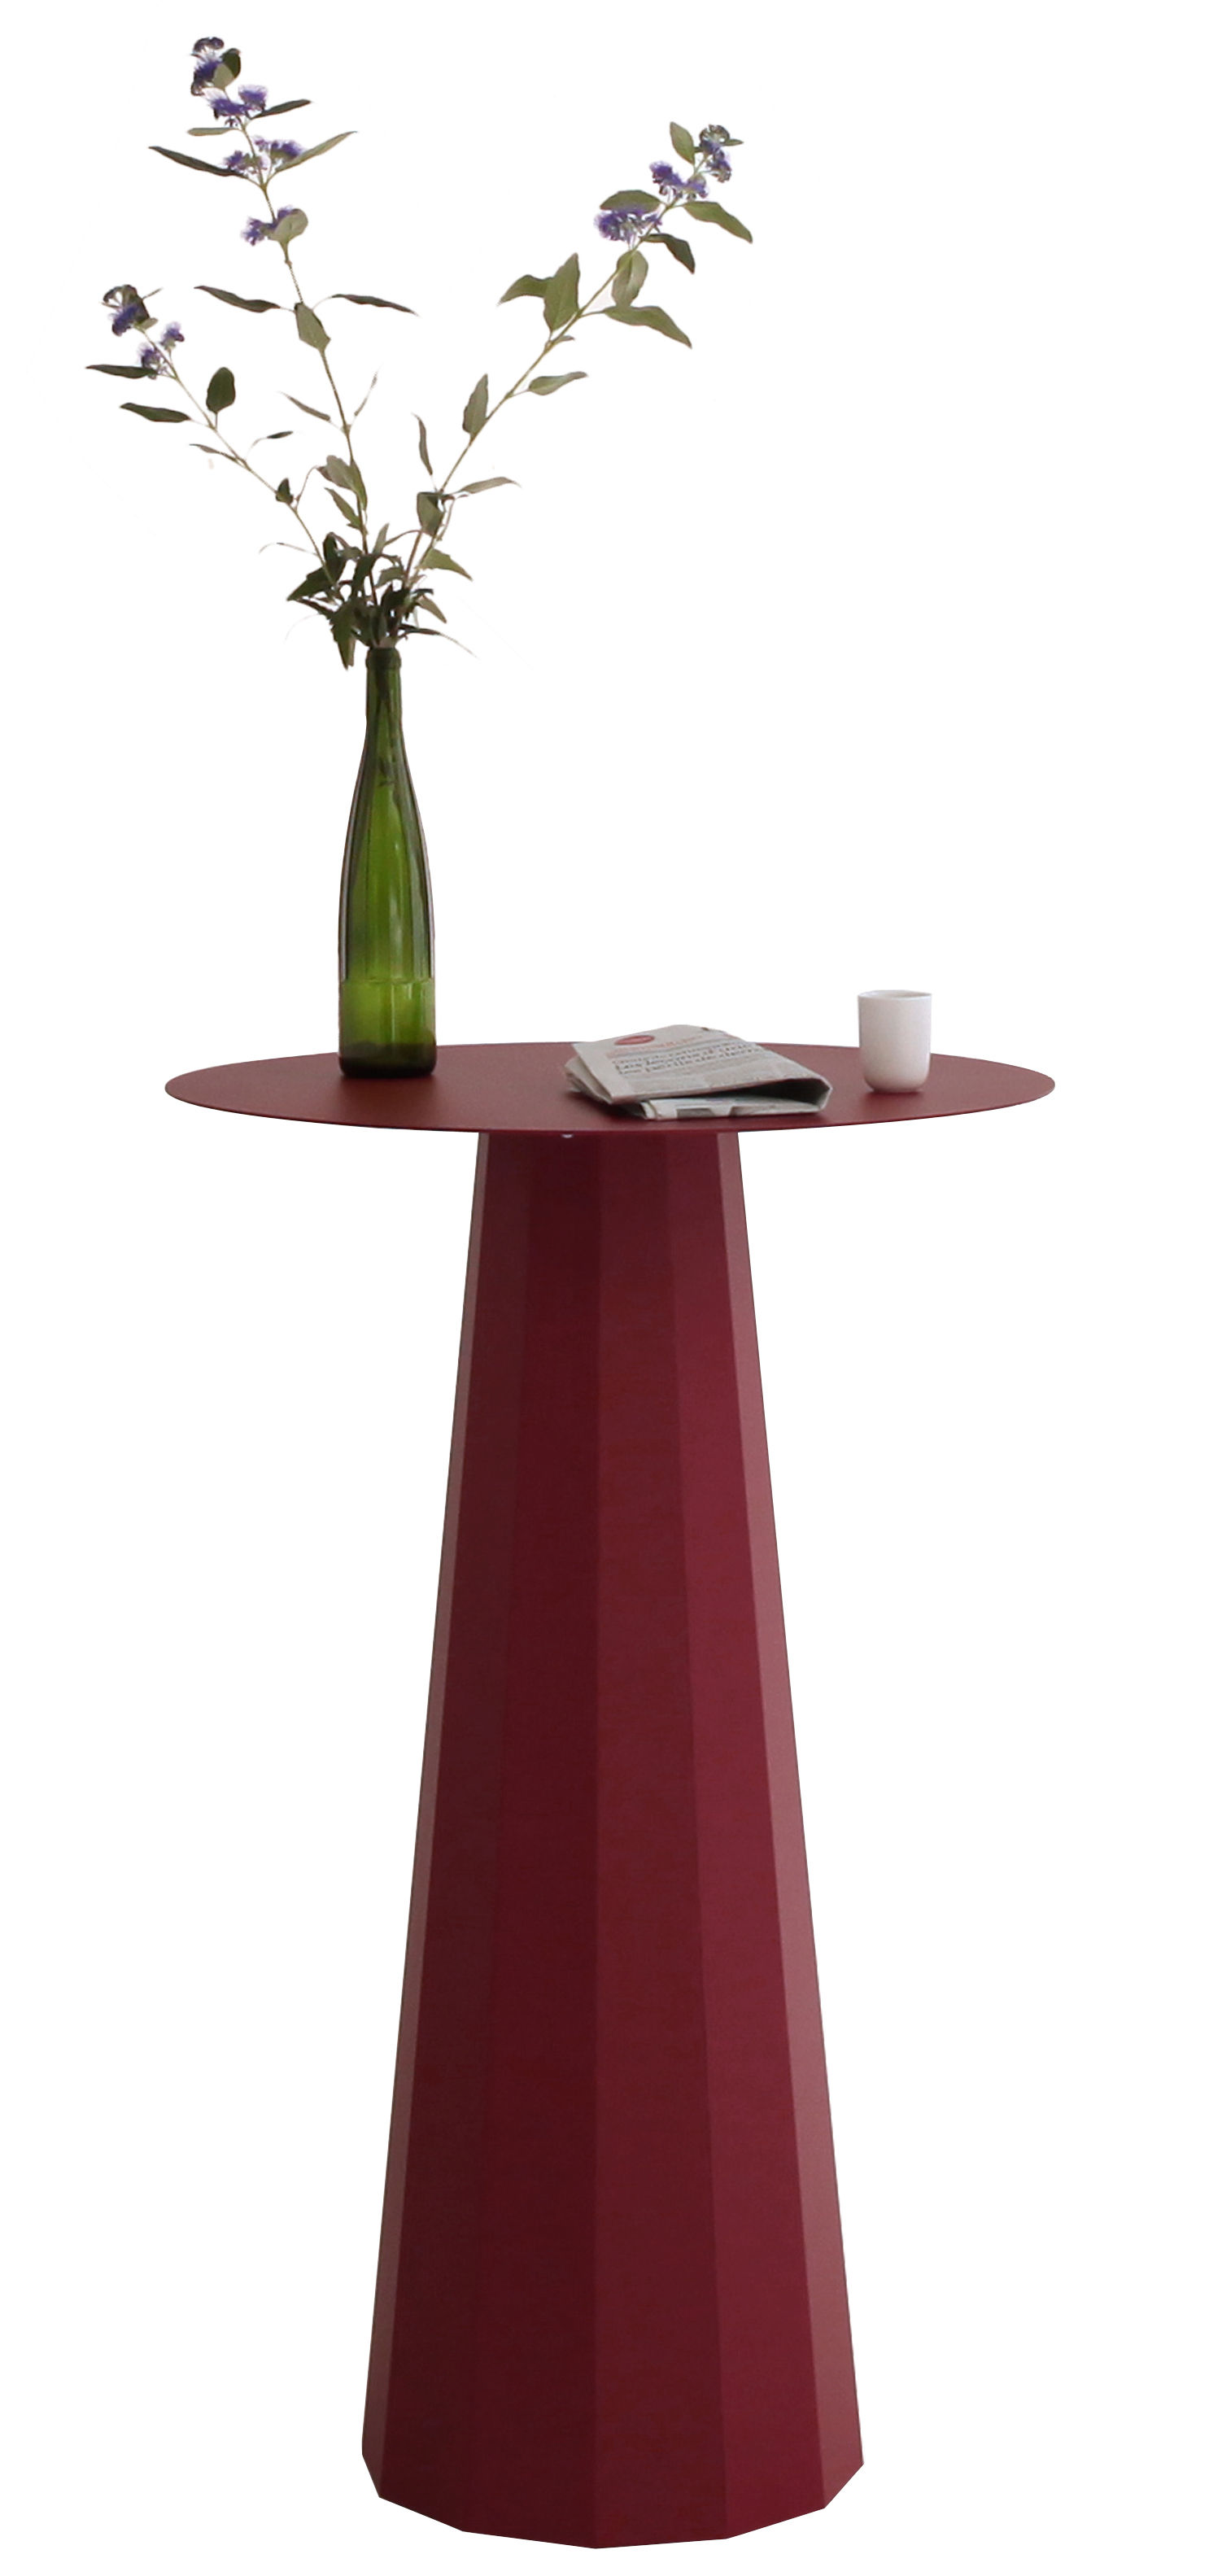 Furniture - High Tables - Ankara High table by Matière Grise - Red - Steel